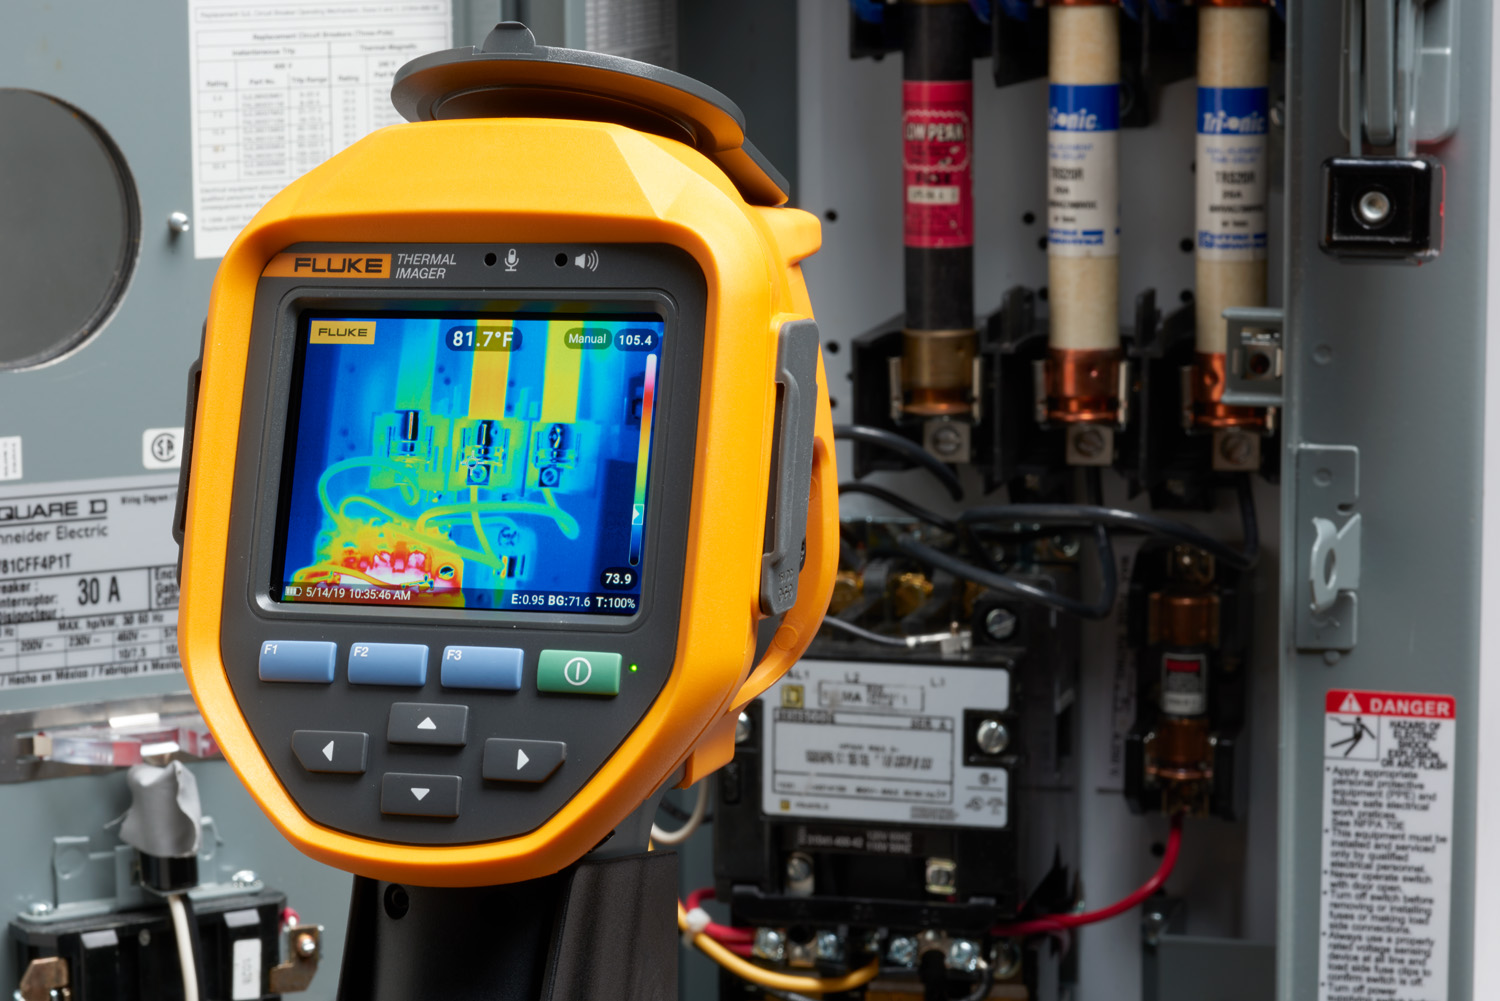 The Fluke Ti480 PRO inspecting an electric panel